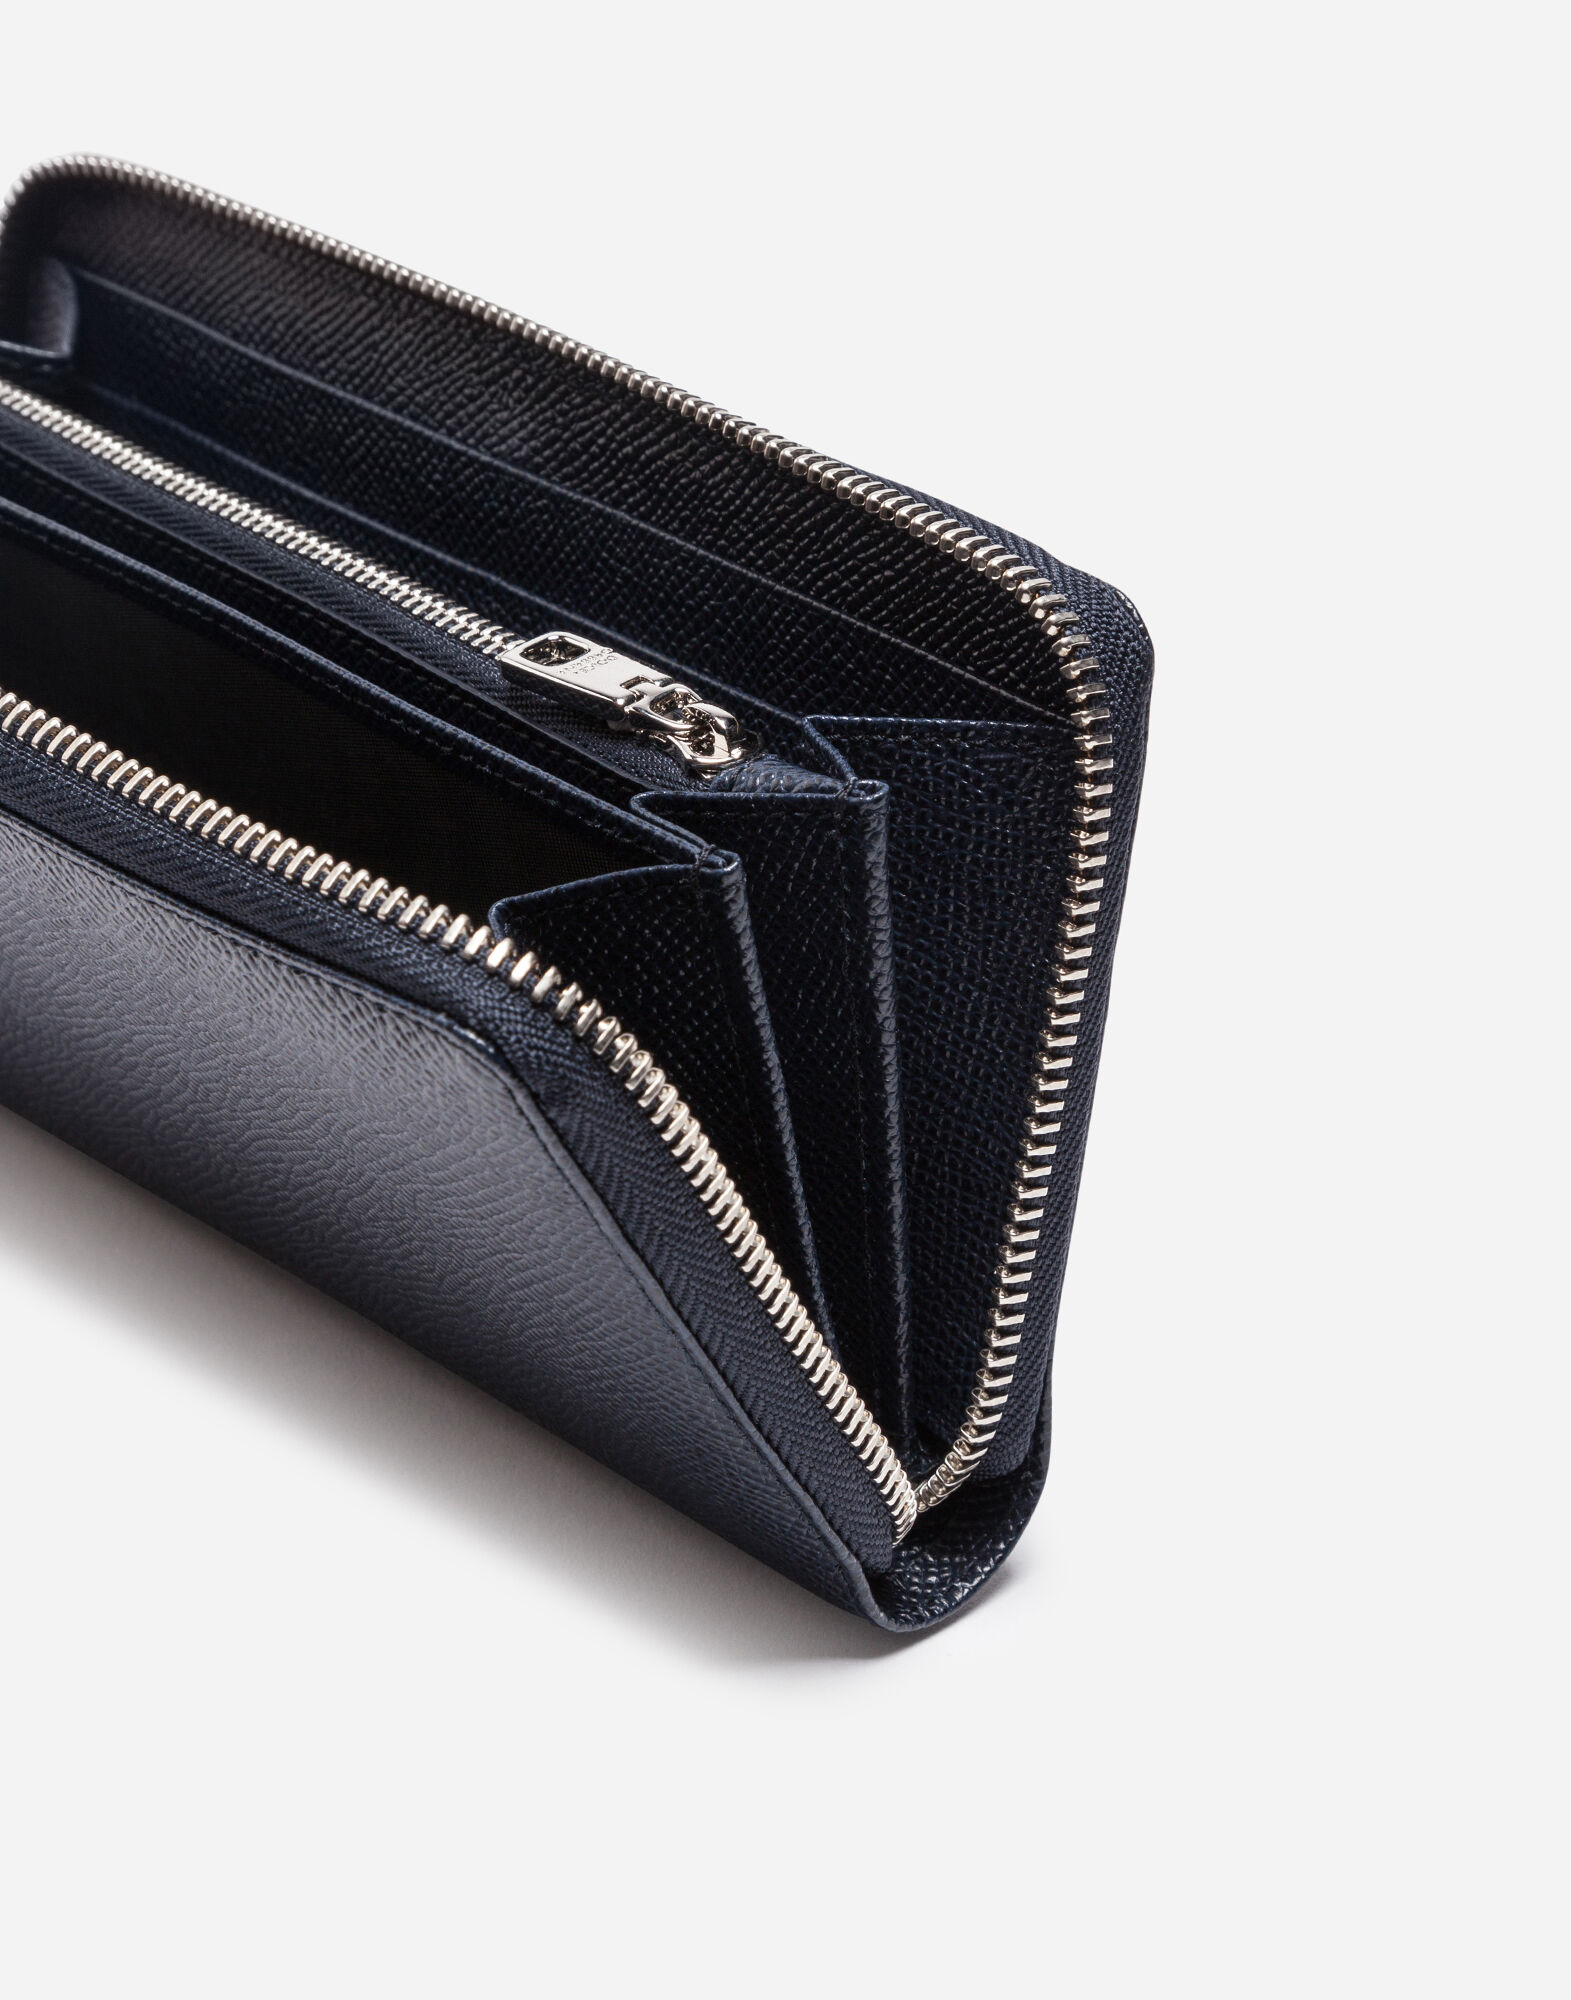 ZIP-AROUND WALLET IN DAUPHINE LEATHER